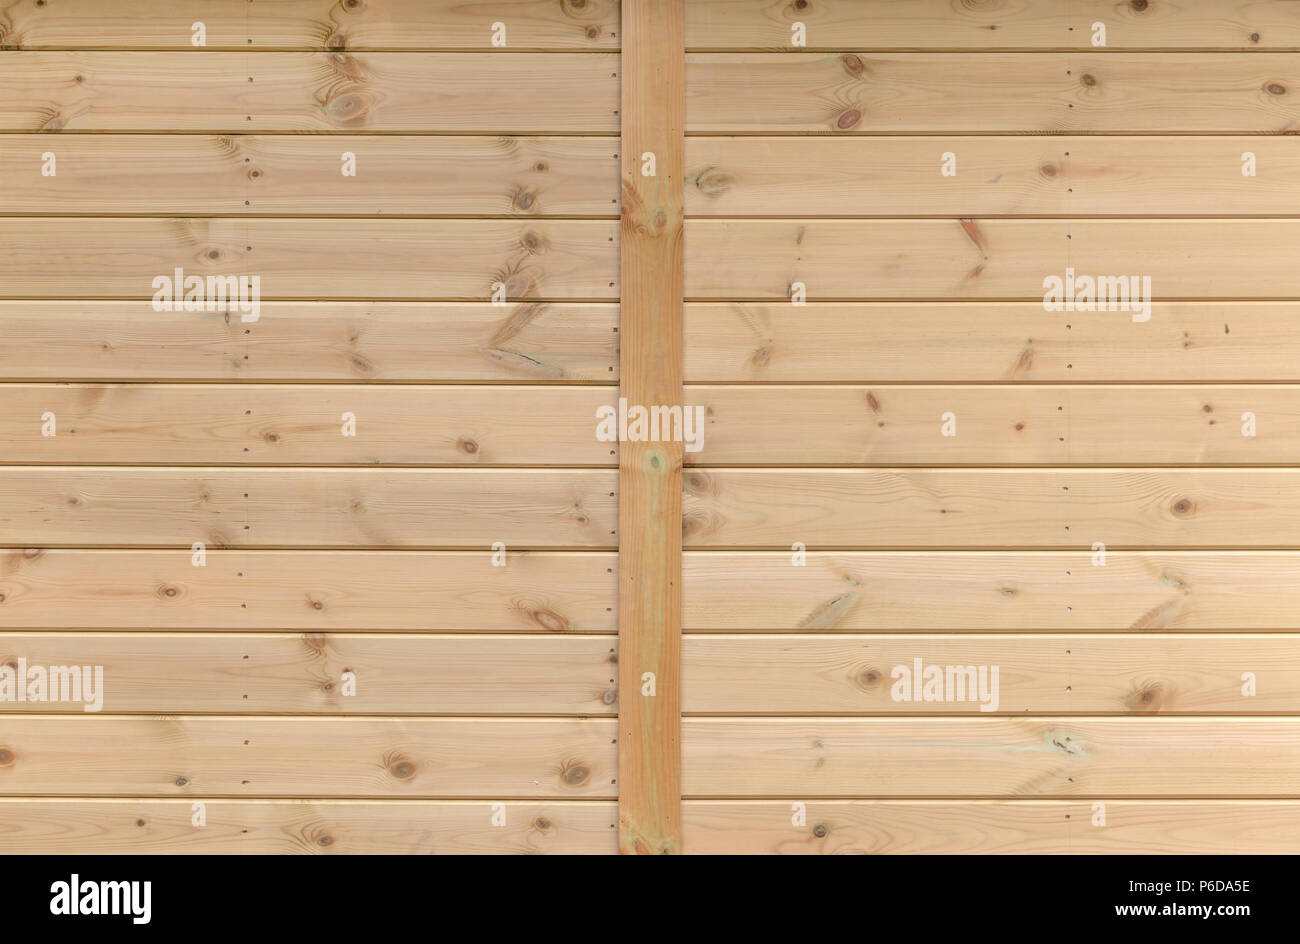 Shiplap Tongue And Groove Timber High Resolution Stock Photography And Images Alamy,Grey Benjamin Moore Paints